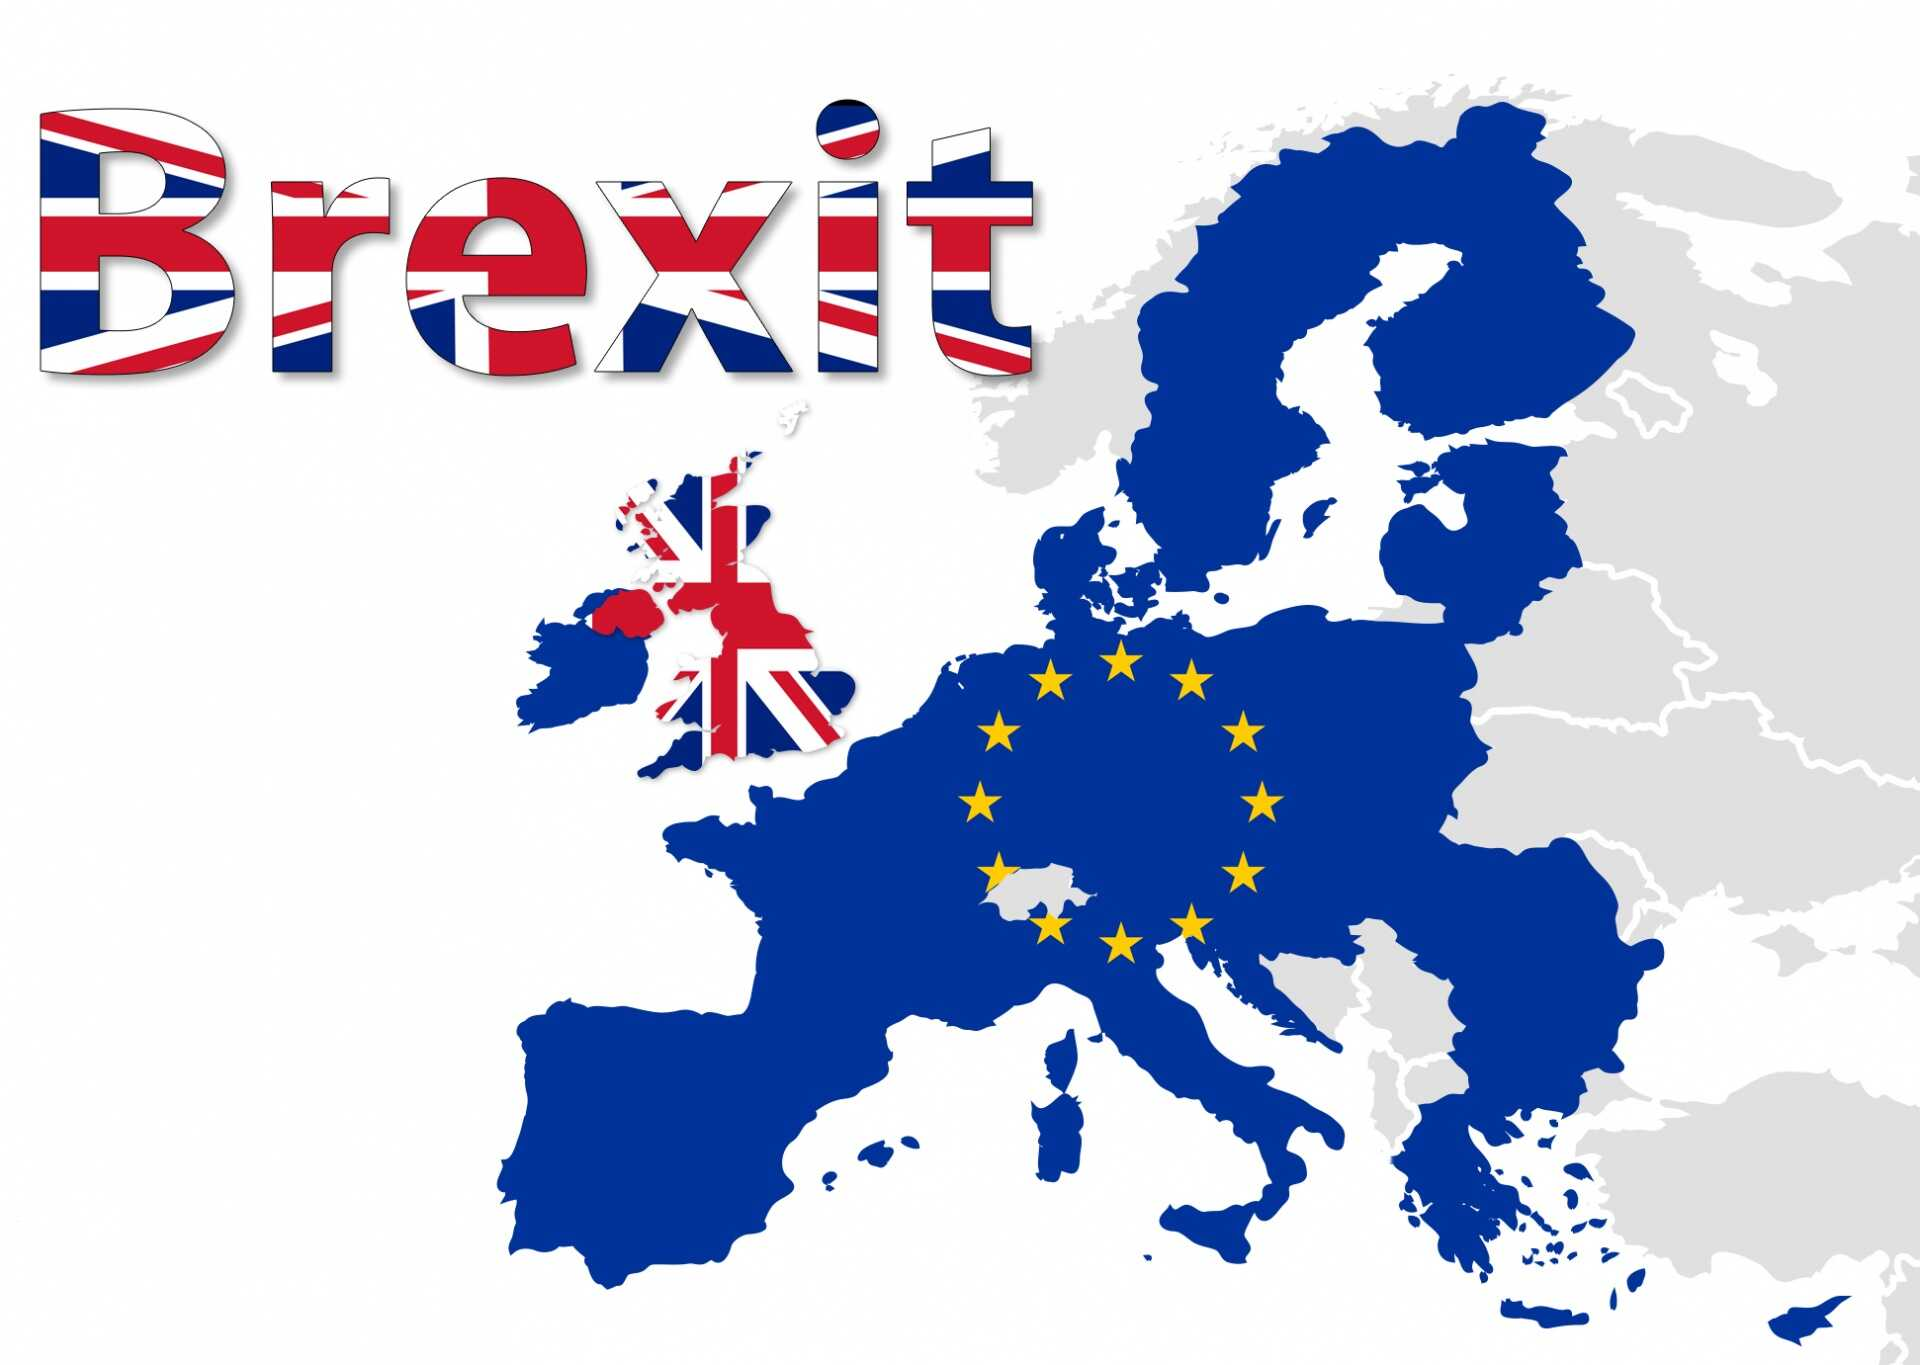 An illustration of Europe with a European flag over mainland Europe and a British flag over Britain alongside the word Brexit in a British flag